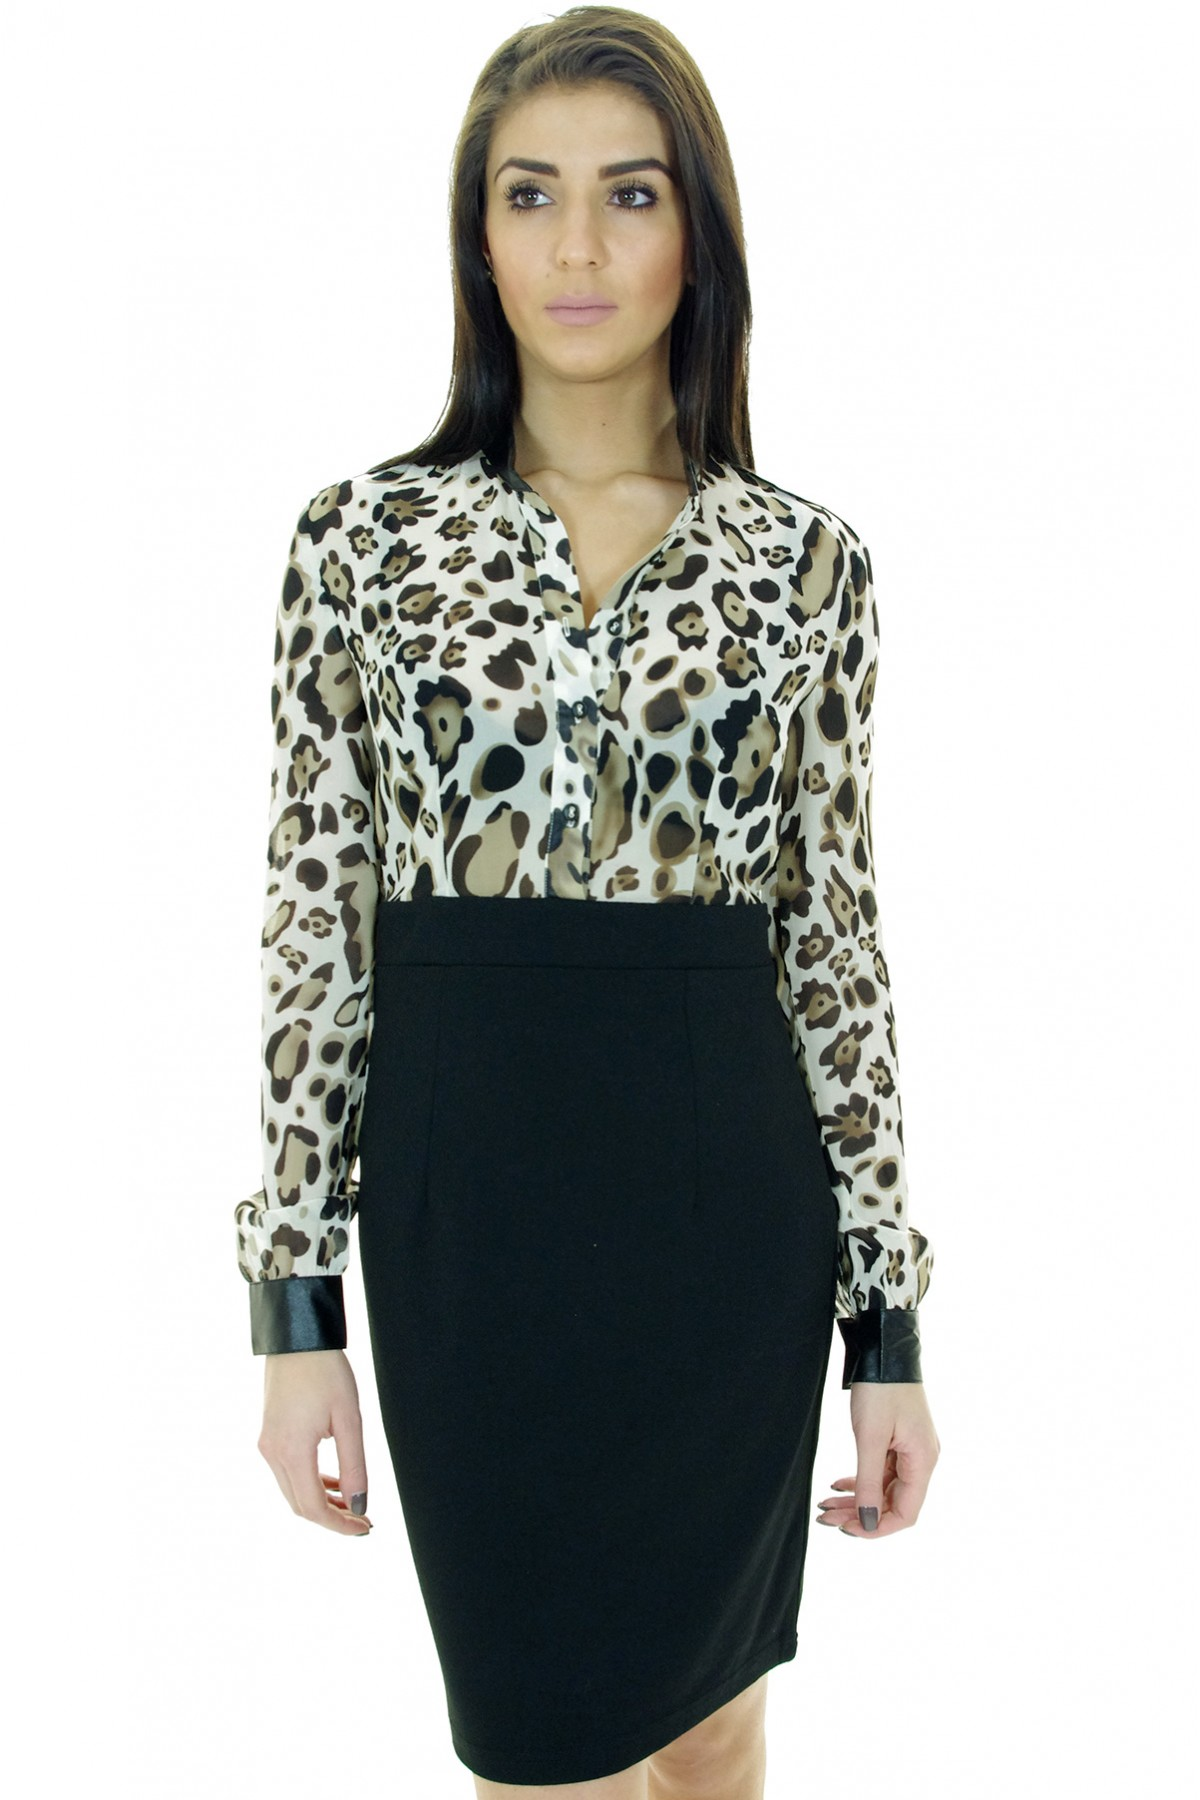 Download this Home Leopard Blouse Dress picture